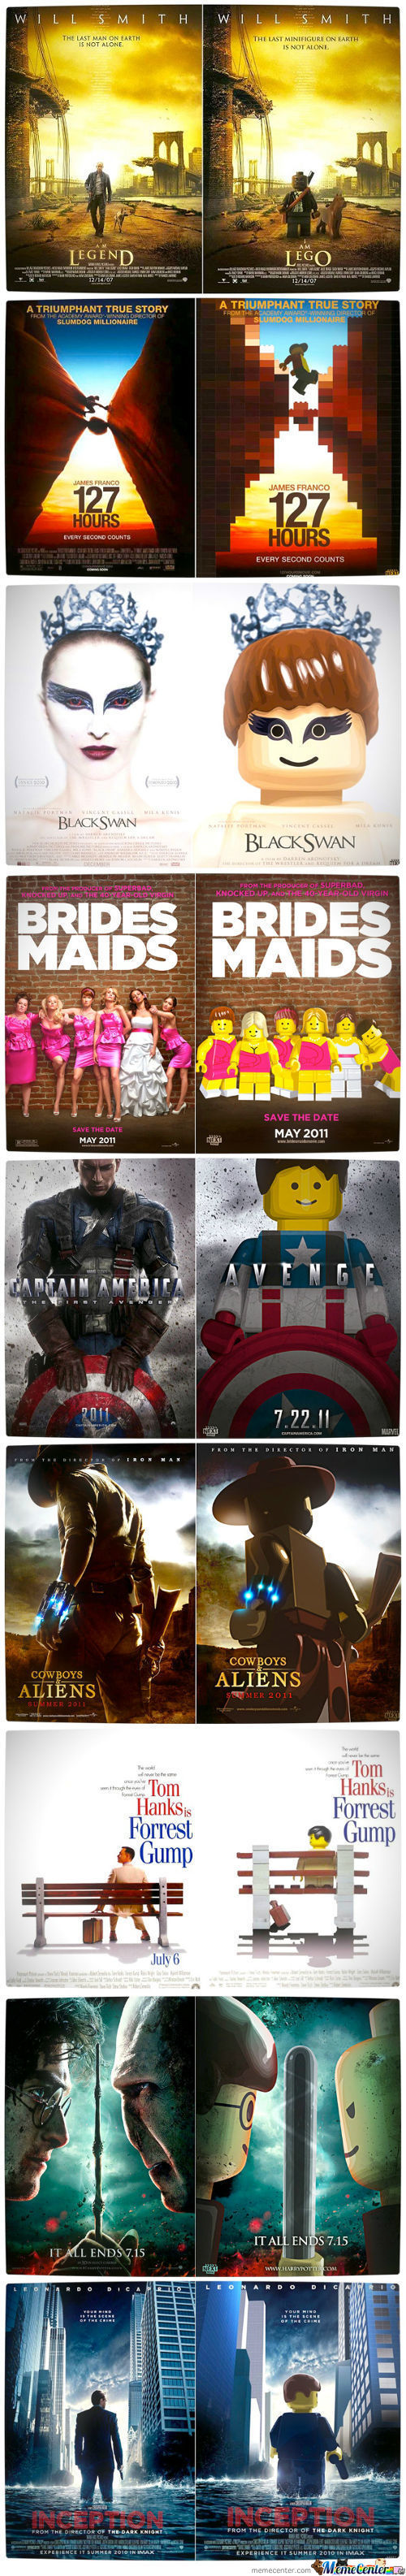 Movie Posters Recreated Using Lego Characters Part 1